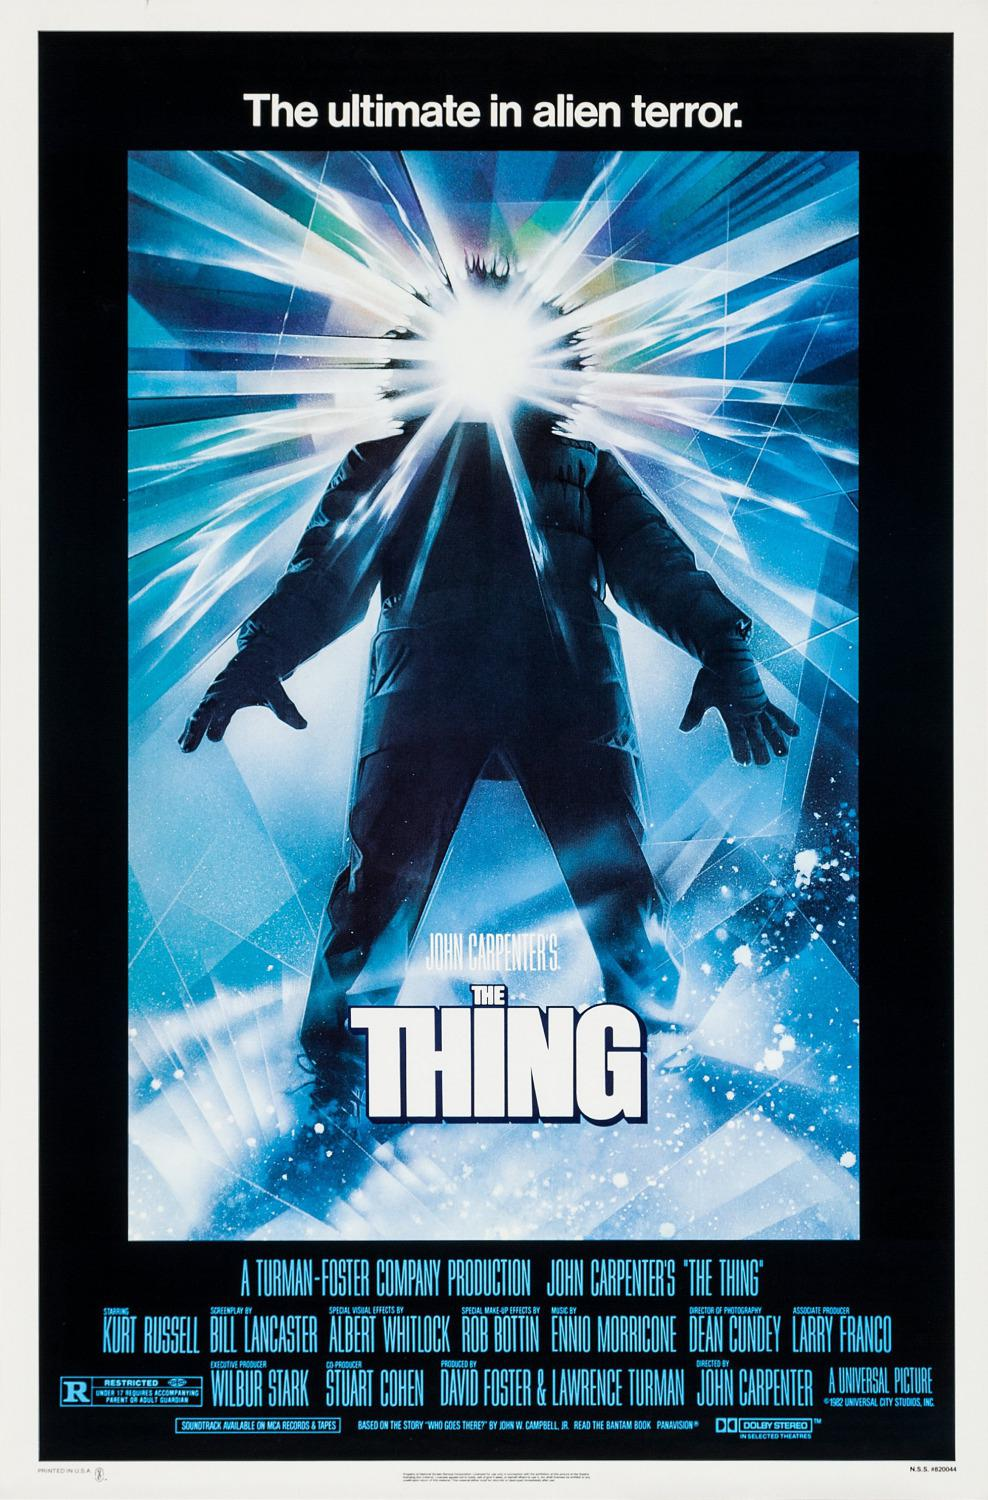 La Cosa - The Thing - prequel 2011